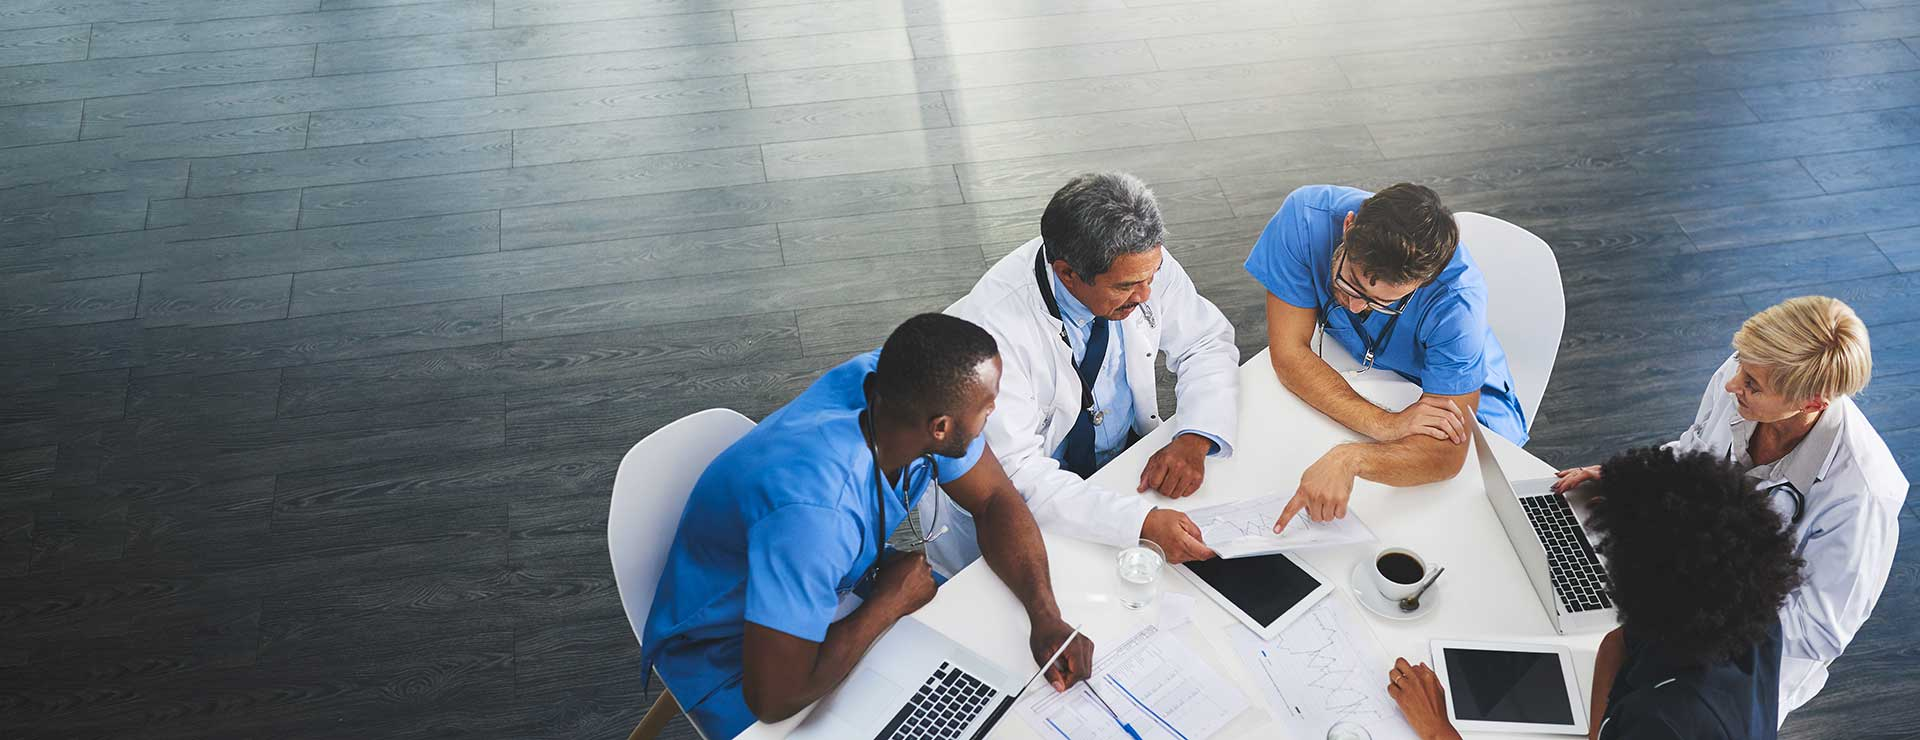 A multidisciplinary team sit around a table, discussing a patient's treatment options.